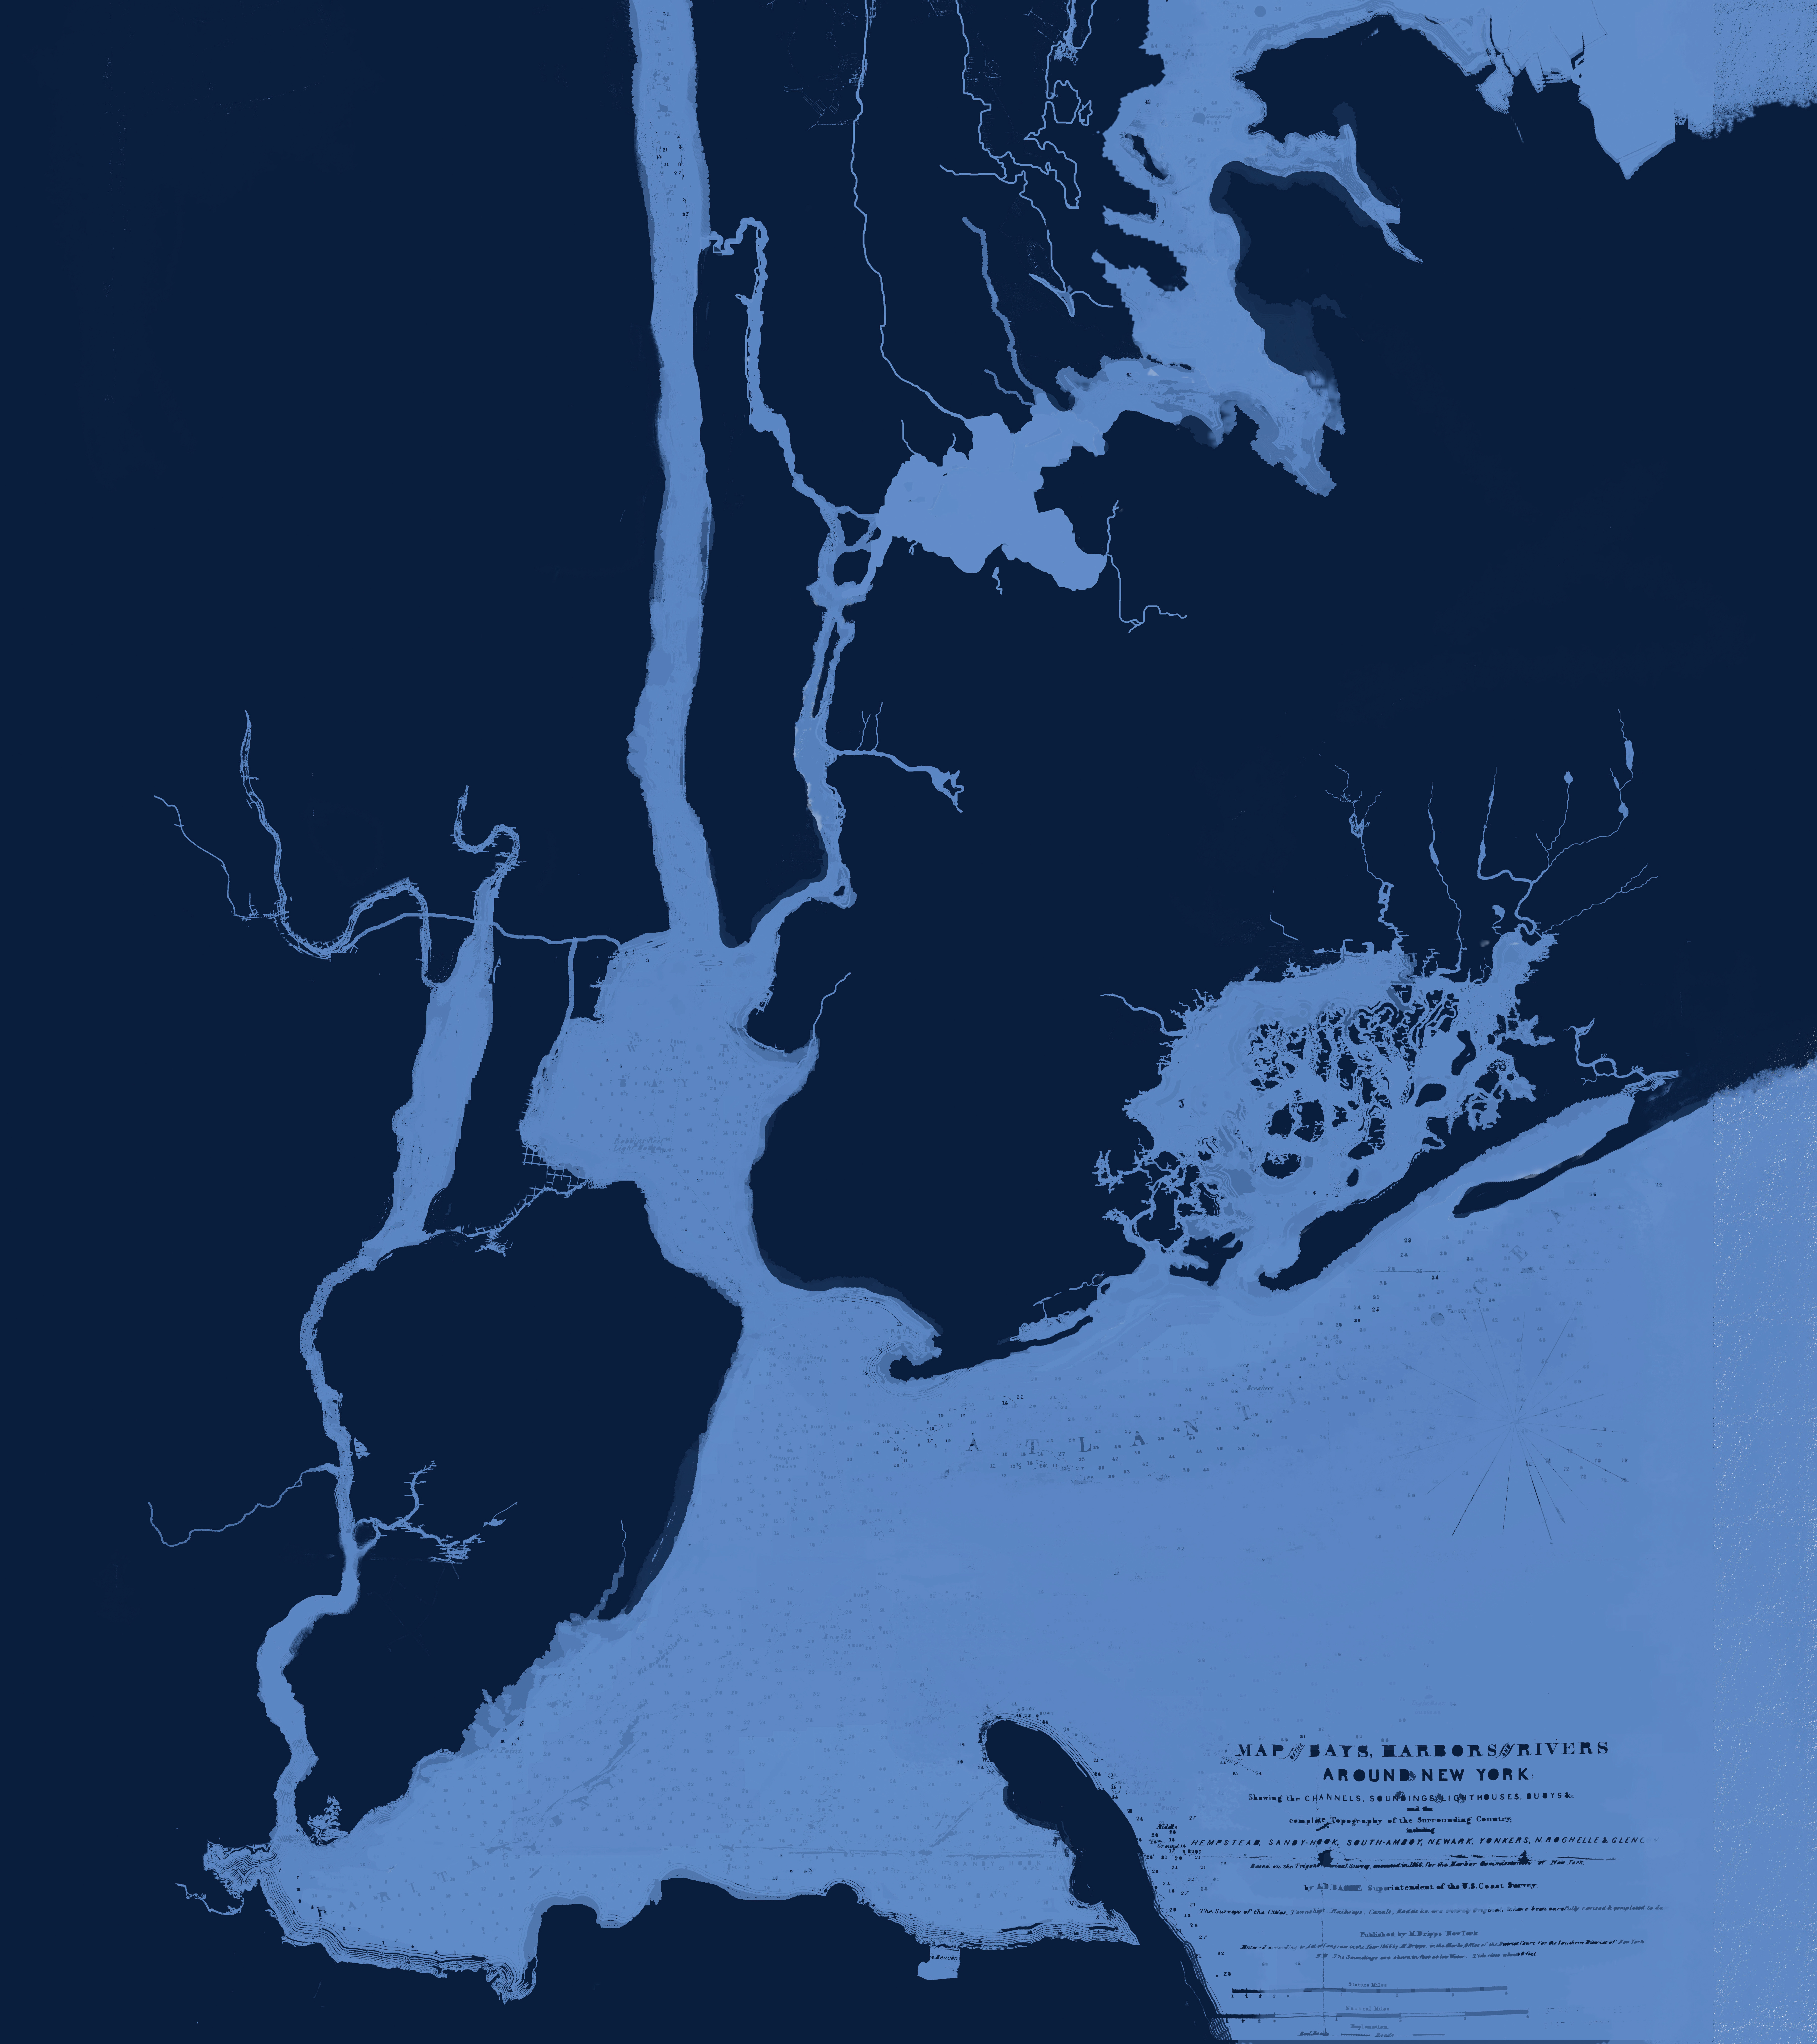 New York City Waterways map